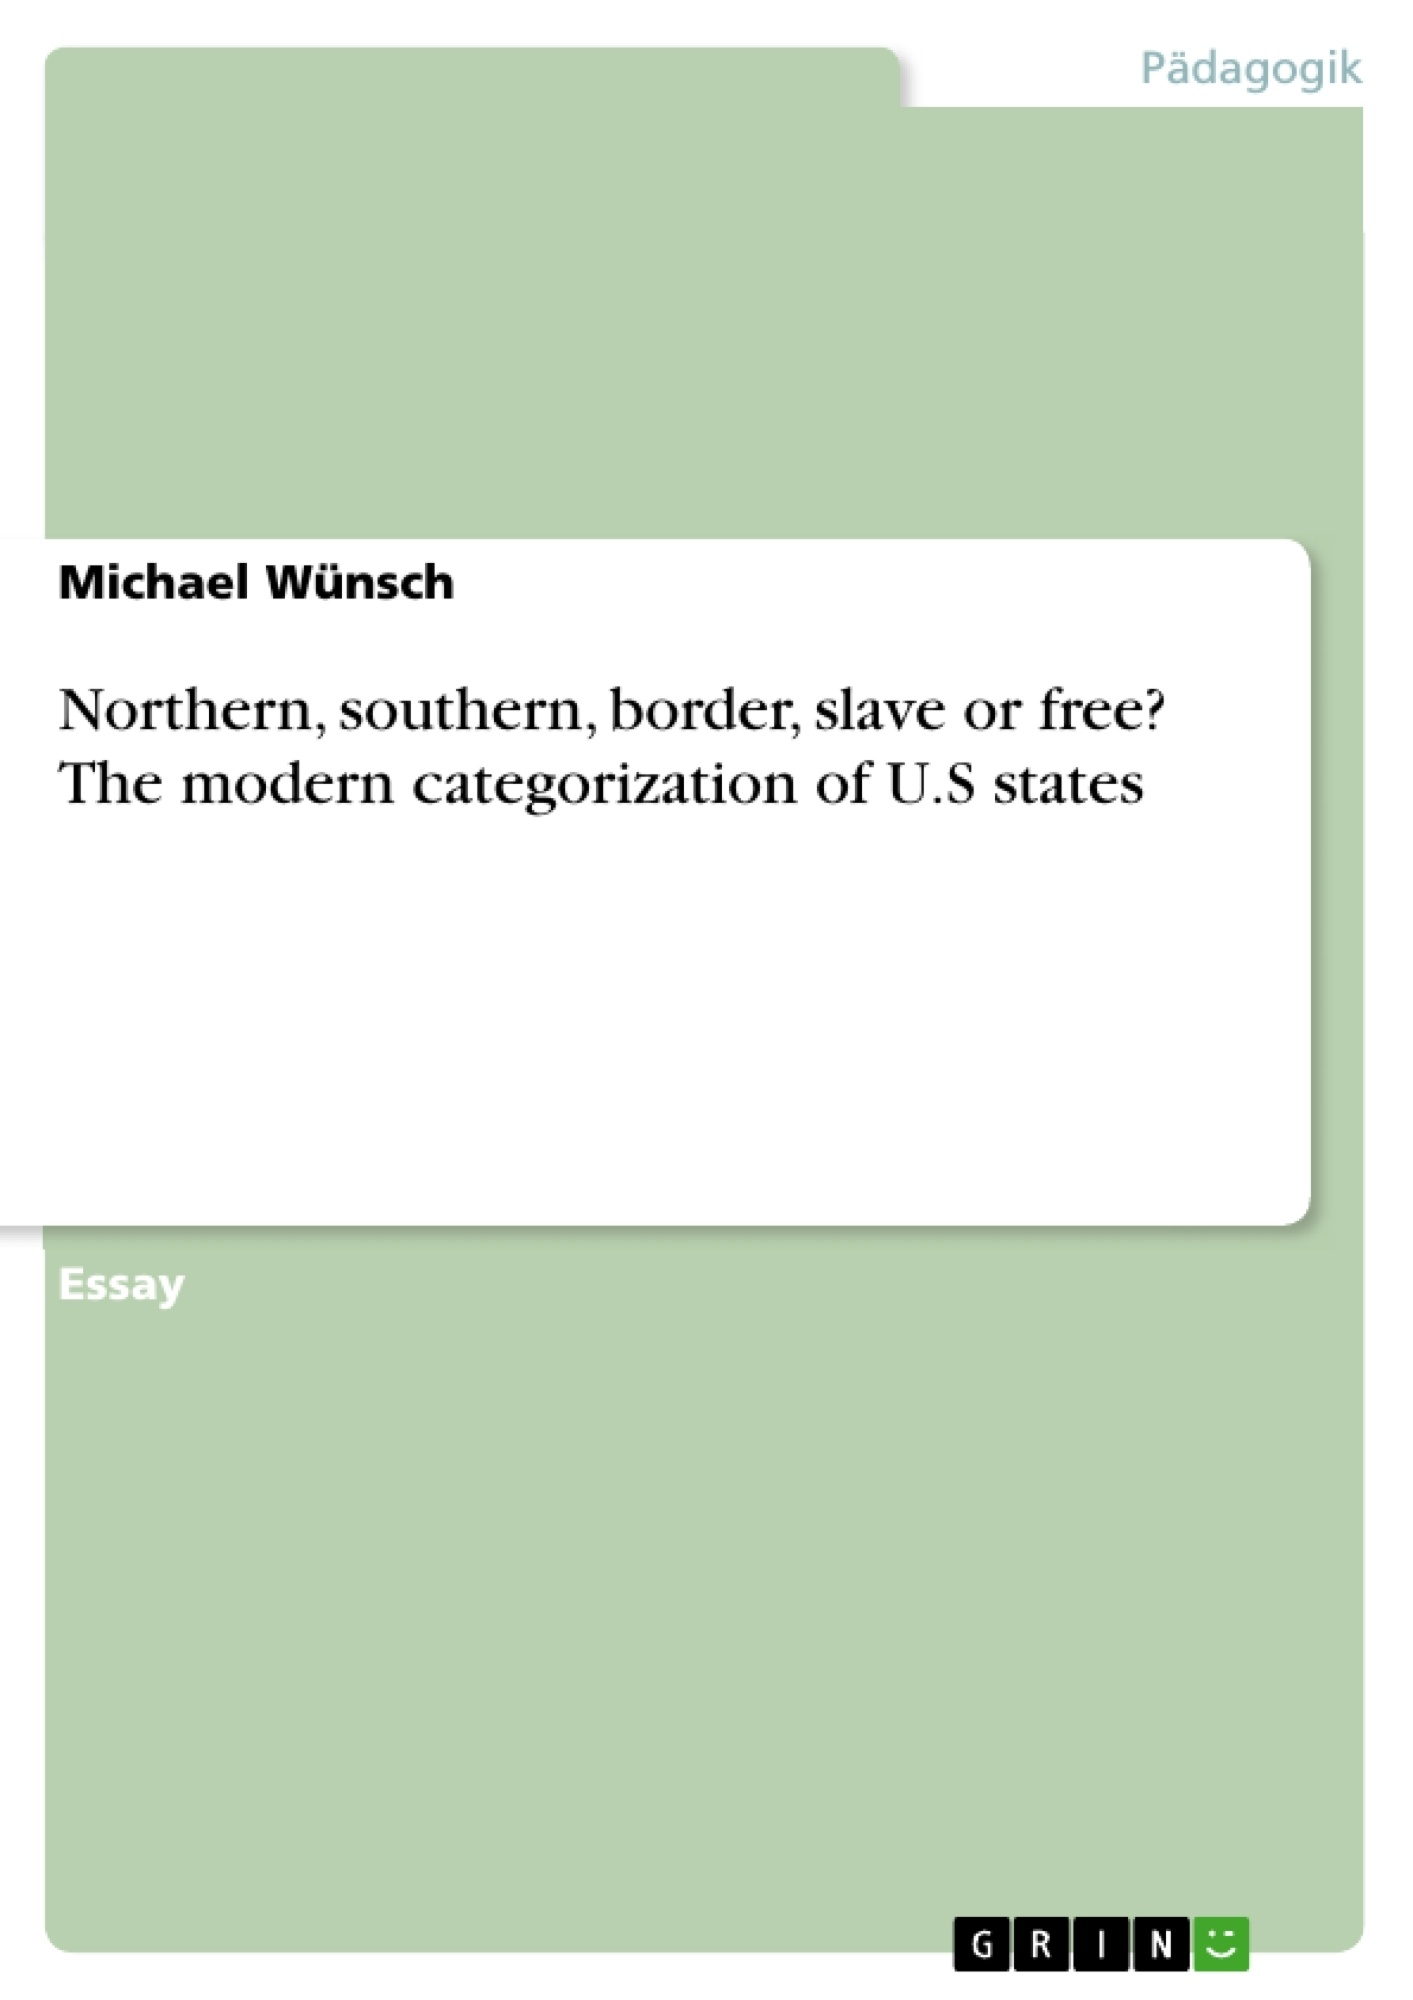 Titel: Northern, southern, border, slave or free? The modern categorization of U.S states